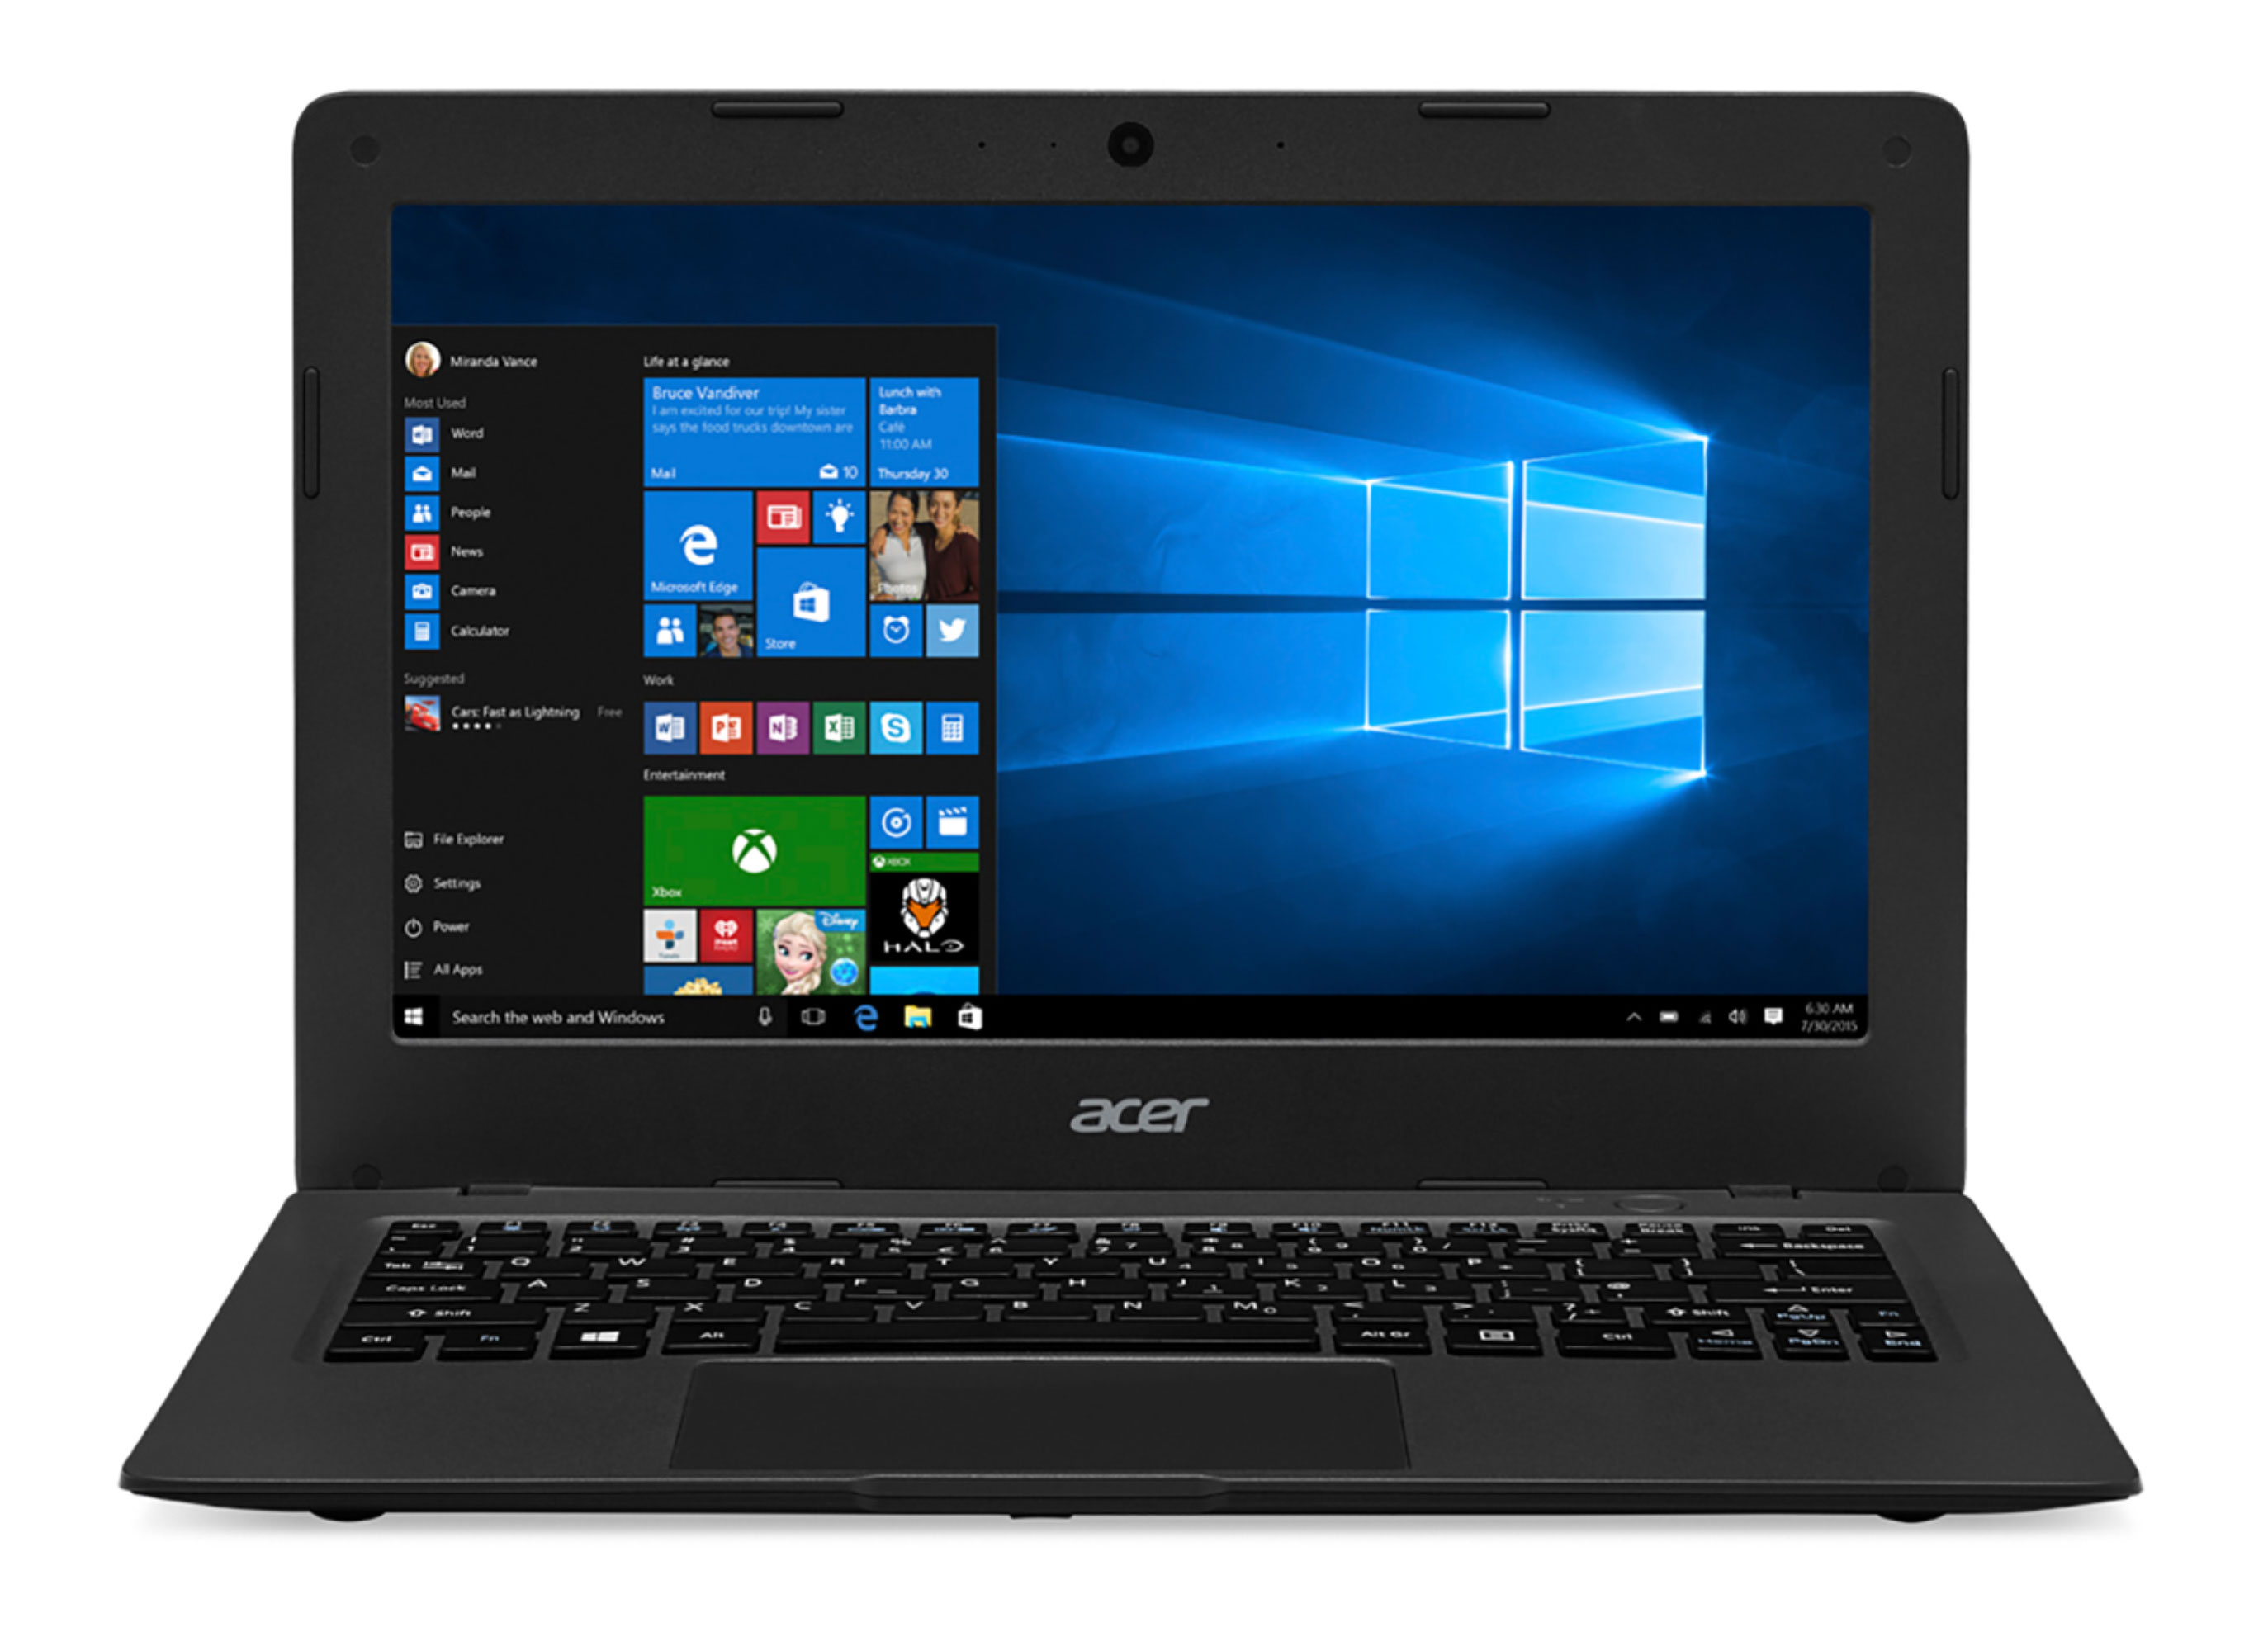 Acer Aspire AO1-131 116 Cloudbook 2GB RAM 32GB Storage